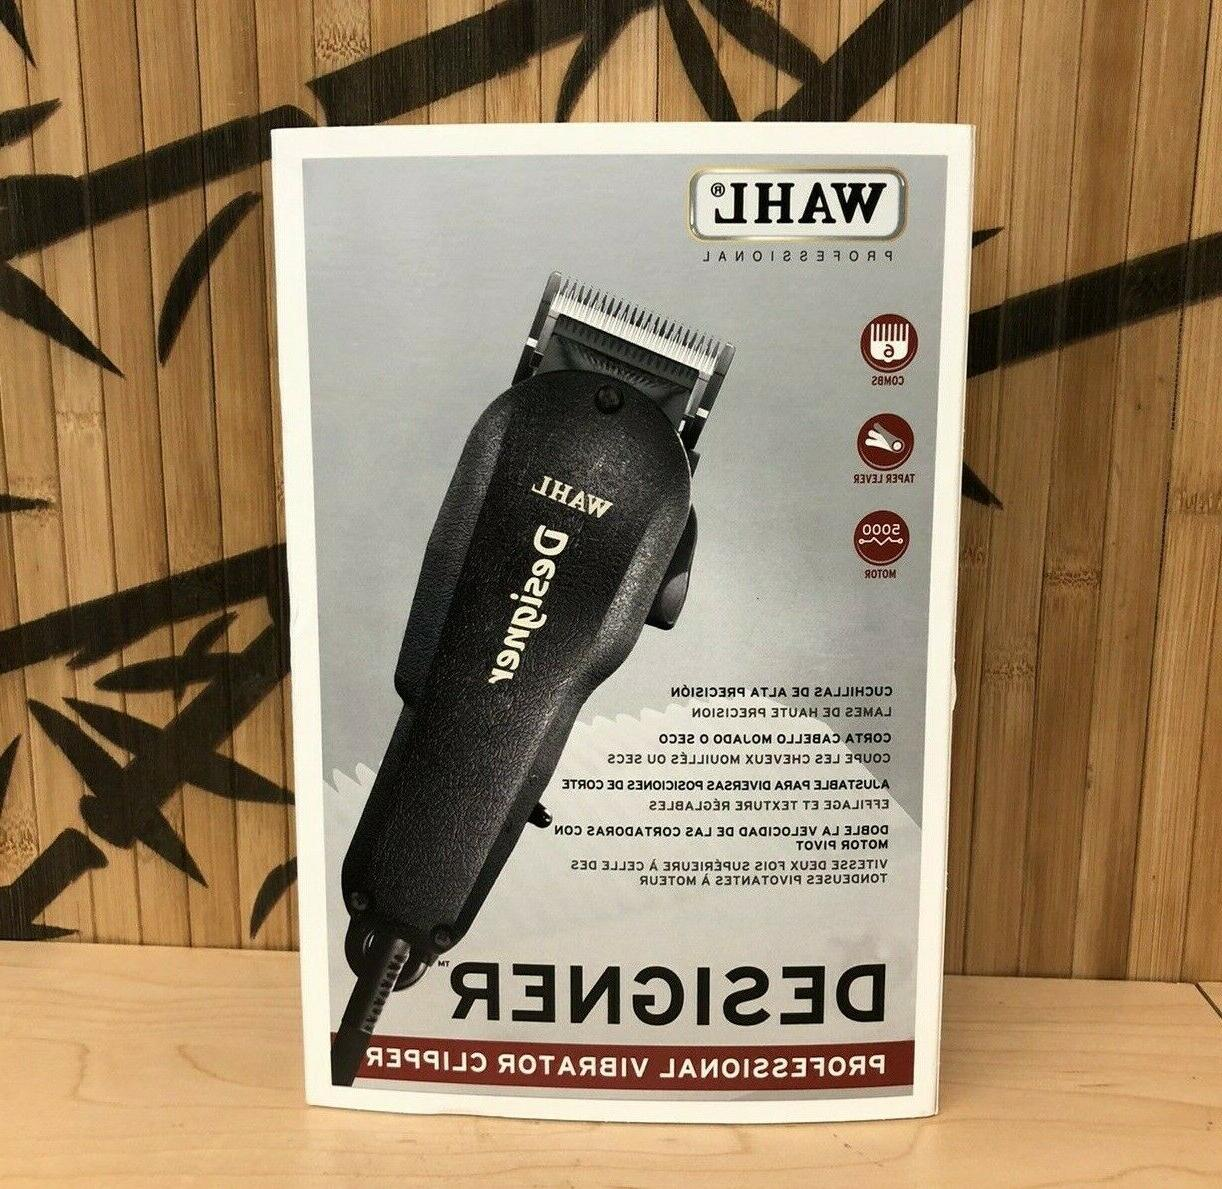 designer vibrator hair clipper